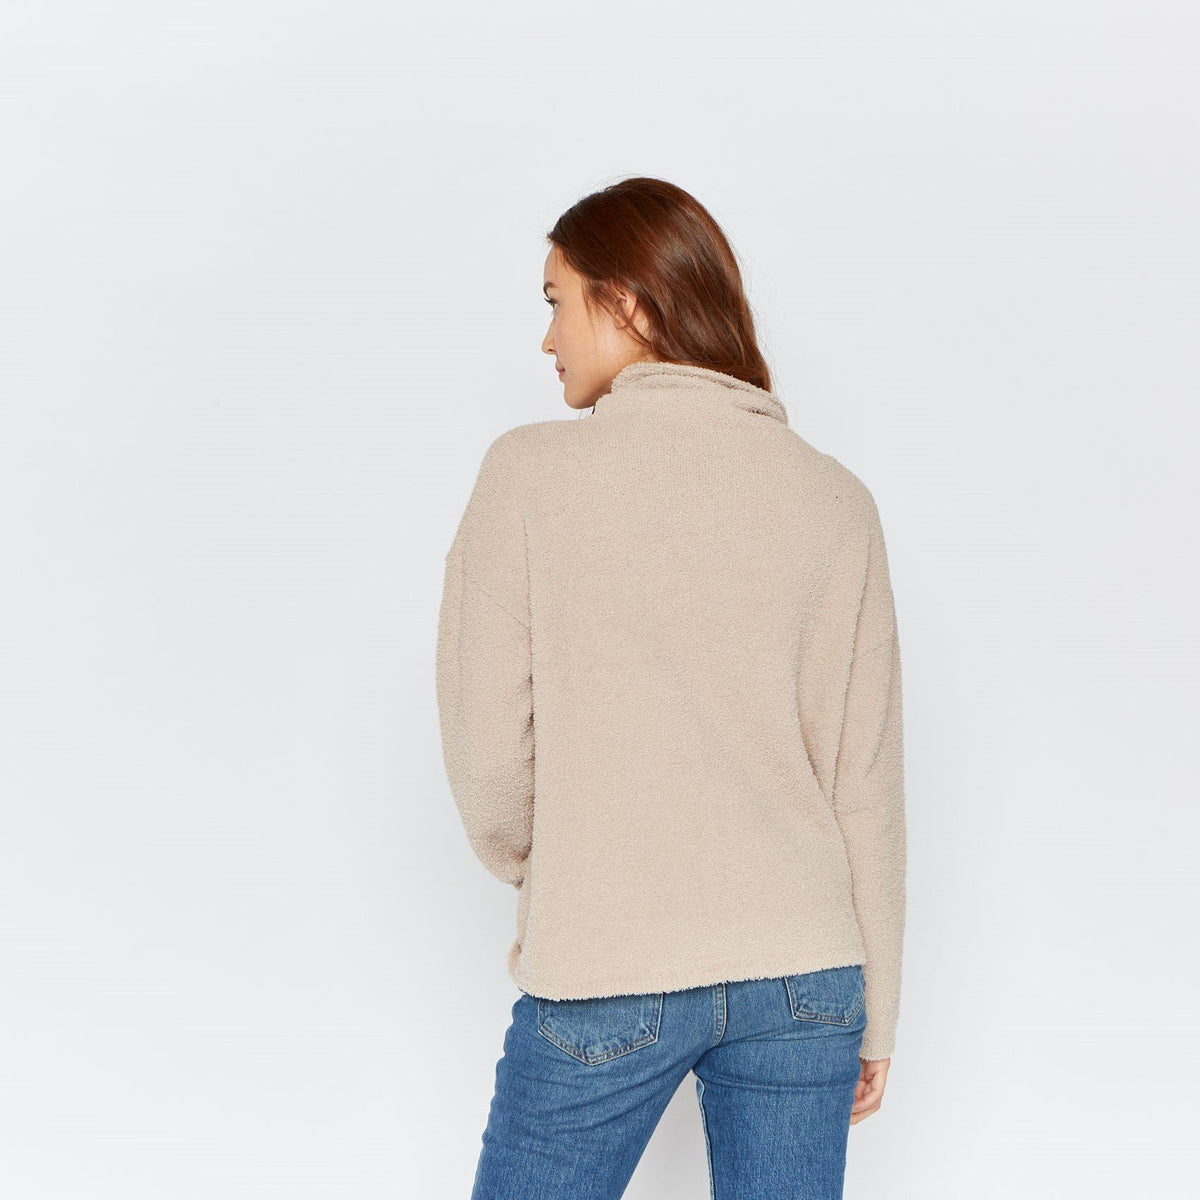 Nicole Sweater Thread & Supply Taupe L